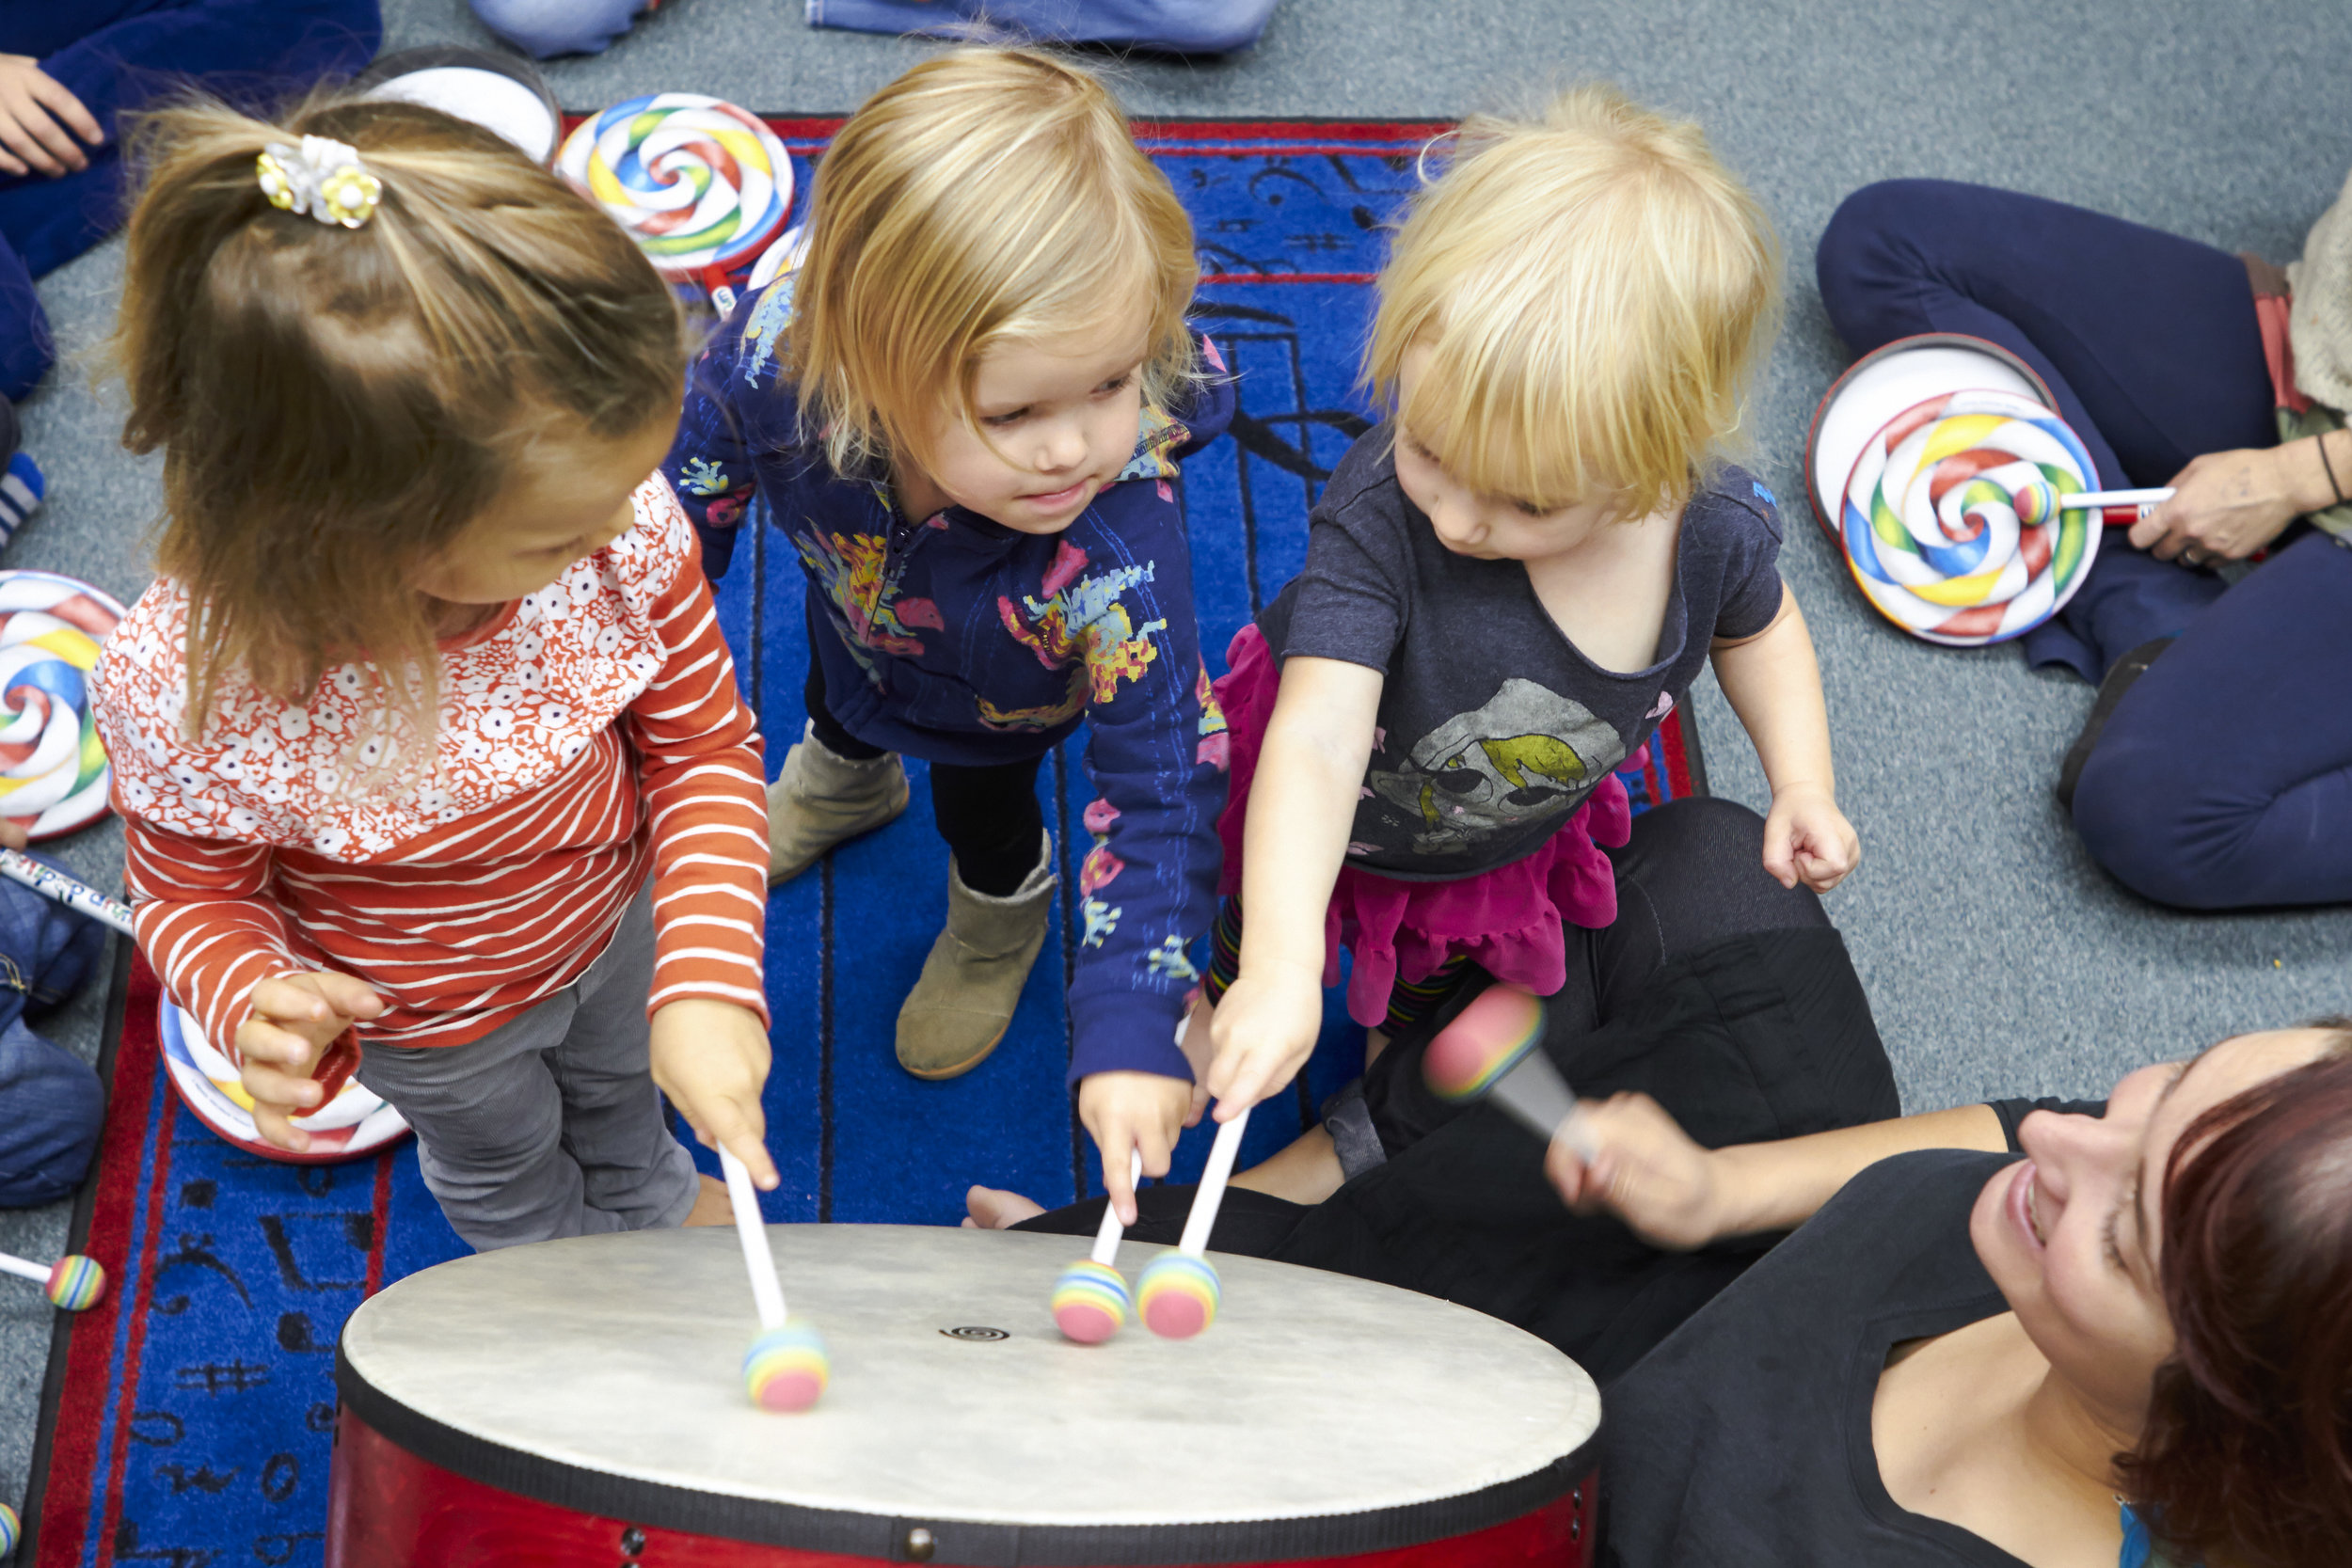 Little Mozarts ™ - Recommended for those walking to 4 years oldMonday or Thursday 10-10:45 AM or 11-11:45 AMFall 2019 Semester: September 9 - December 5 Spring 2020 Semester: TBDThis course highlights musical games and movement activities to teach basic pitch and rhythm skills. Your child will discover music in a new and exciting way, combining the theories of Dalcroze Eurythmics, the rhythmic principles of Orff, and Kodaly's singing methodology.Fostering the emotional, physical, cognitive, social and aesthetic growth of each child through the discovery of essential musical elements. Parent participation is required for this course.